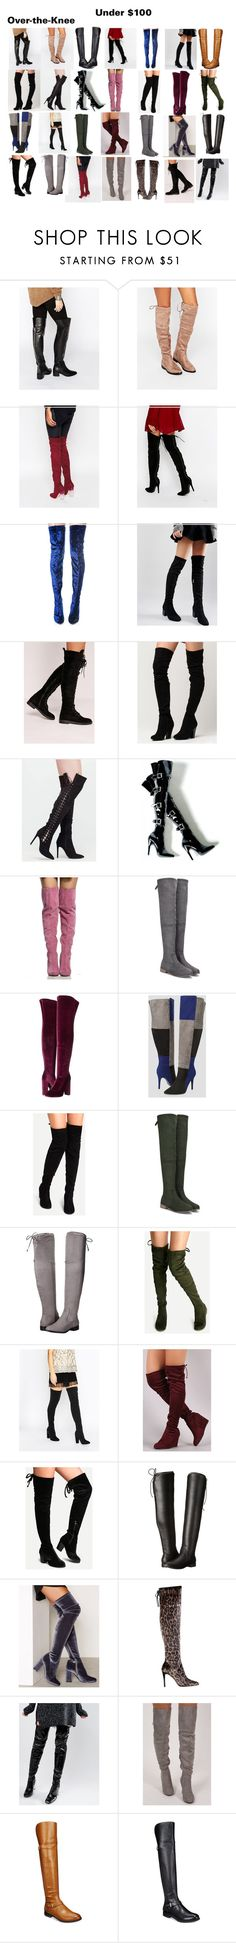 """Find Your Perfect Pair of Boots for Fall"" by sade-aladejana-lewis on Polyvore featuring ASOS, Truffle, Cape Robbin, Missguided, MIA, Lust For Life, Ashley Stewart, GUESS, WithChic and Chinese Laundry"